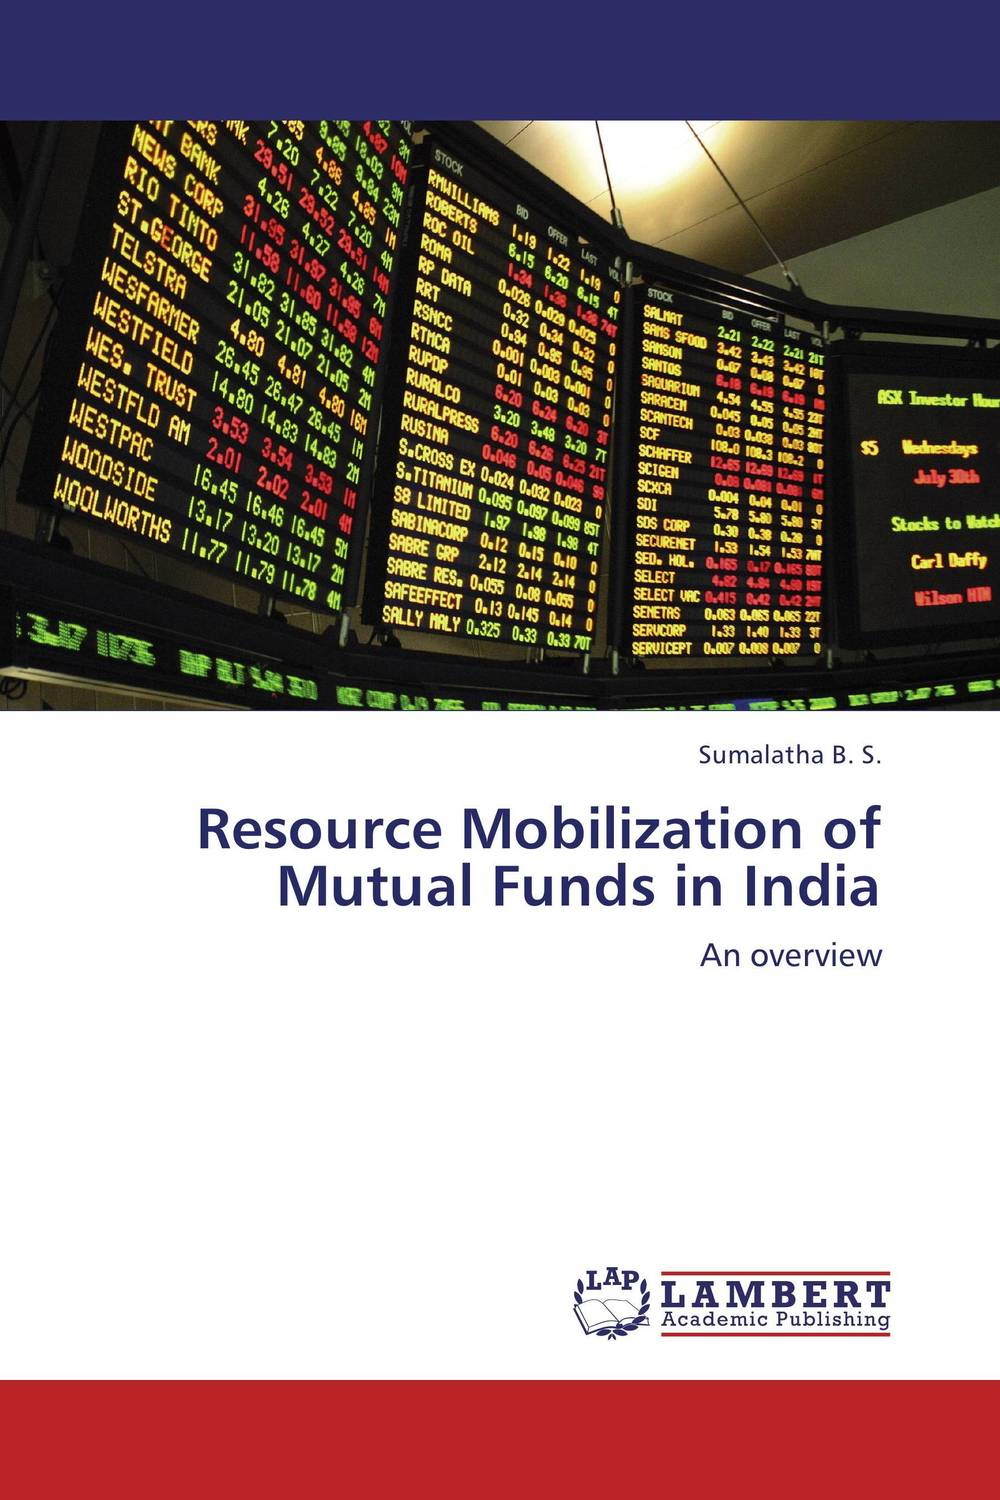 Resource Mobilization of Mutual Funds in India wendy patton making hard cash in a soft real estate market find the next high growth emerging markets buy new construction at big discounts uncover hidden properties raise private funds when bank lending is tight